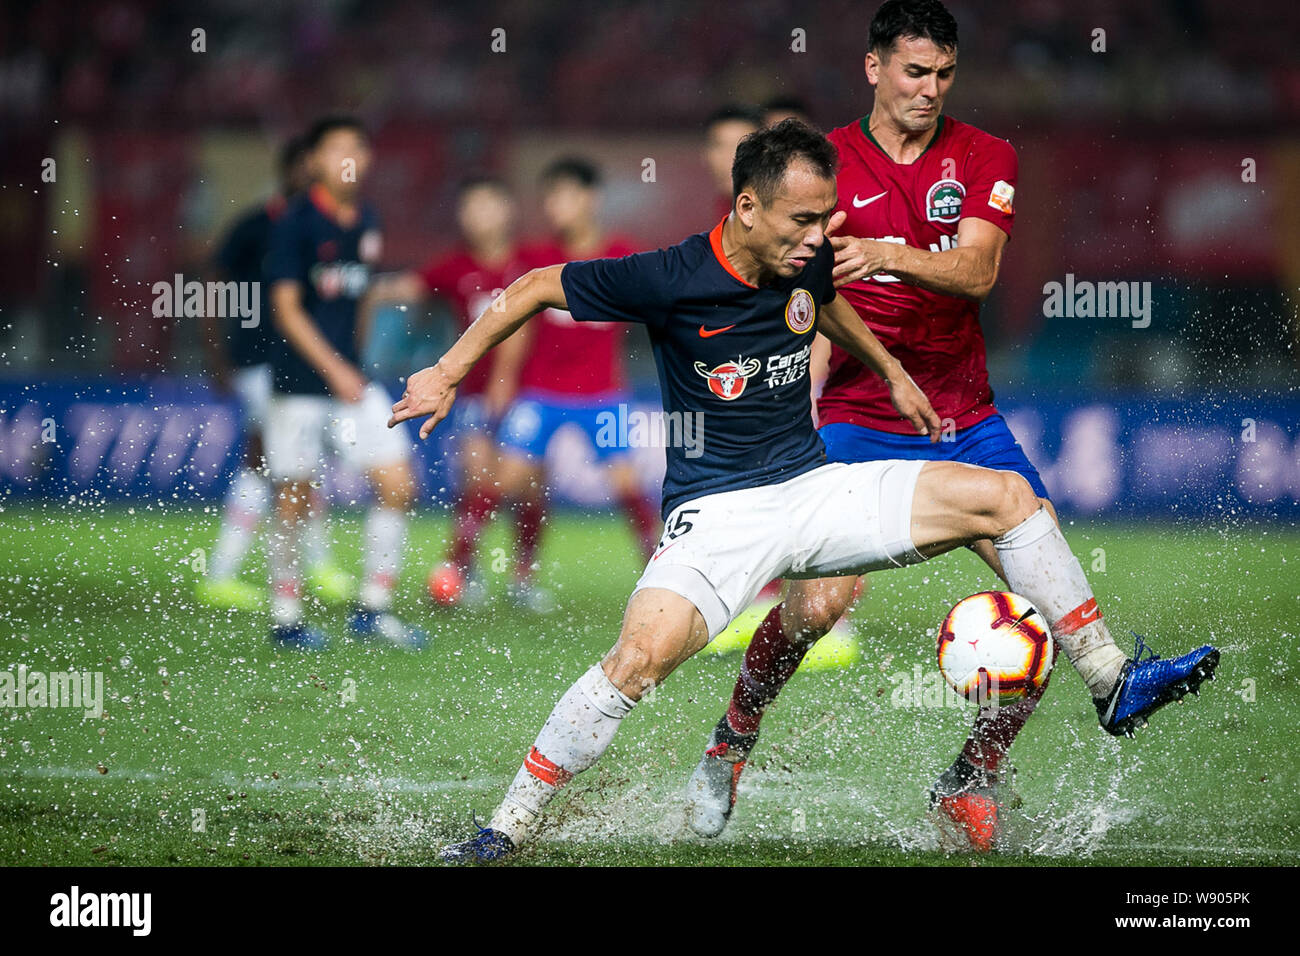 English-born Taiwanese football player Tim Chow, right, of Henan Jianye challenges a player of Beijing Renhe in their 23rd round match during the 2019 Chinese Football Association Super League (CSL) in Zhengzhou city, central China's Henan province, 9 August 2019. Henan Jianye defeated Beijing Renhe 2-1. Stock Photo